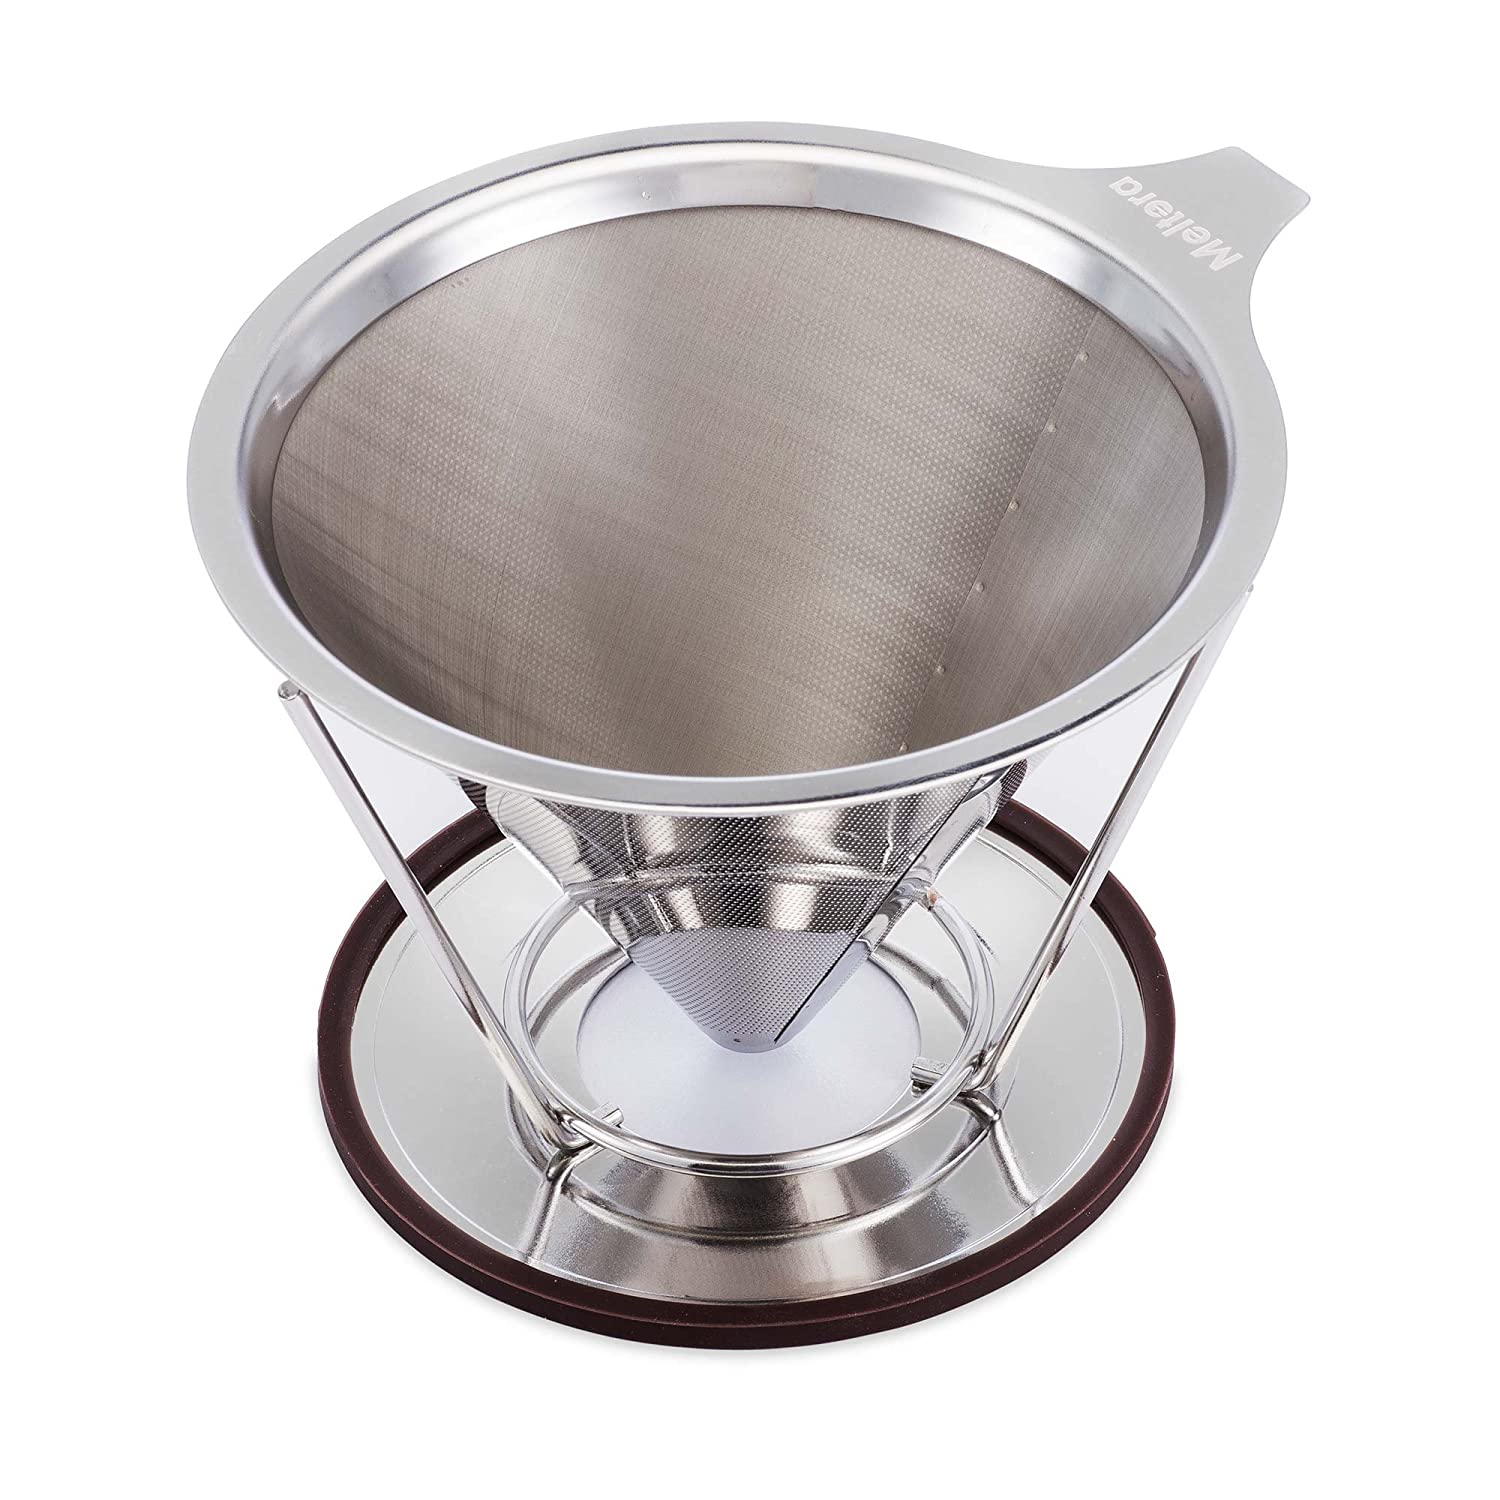 Amazon single cup coffee maker by meltera pour over coffee amazon single cup coffee maker by meltera pour over coffee filter for best brew stainless steel reusable cone dripper with removable stand stopboris Images